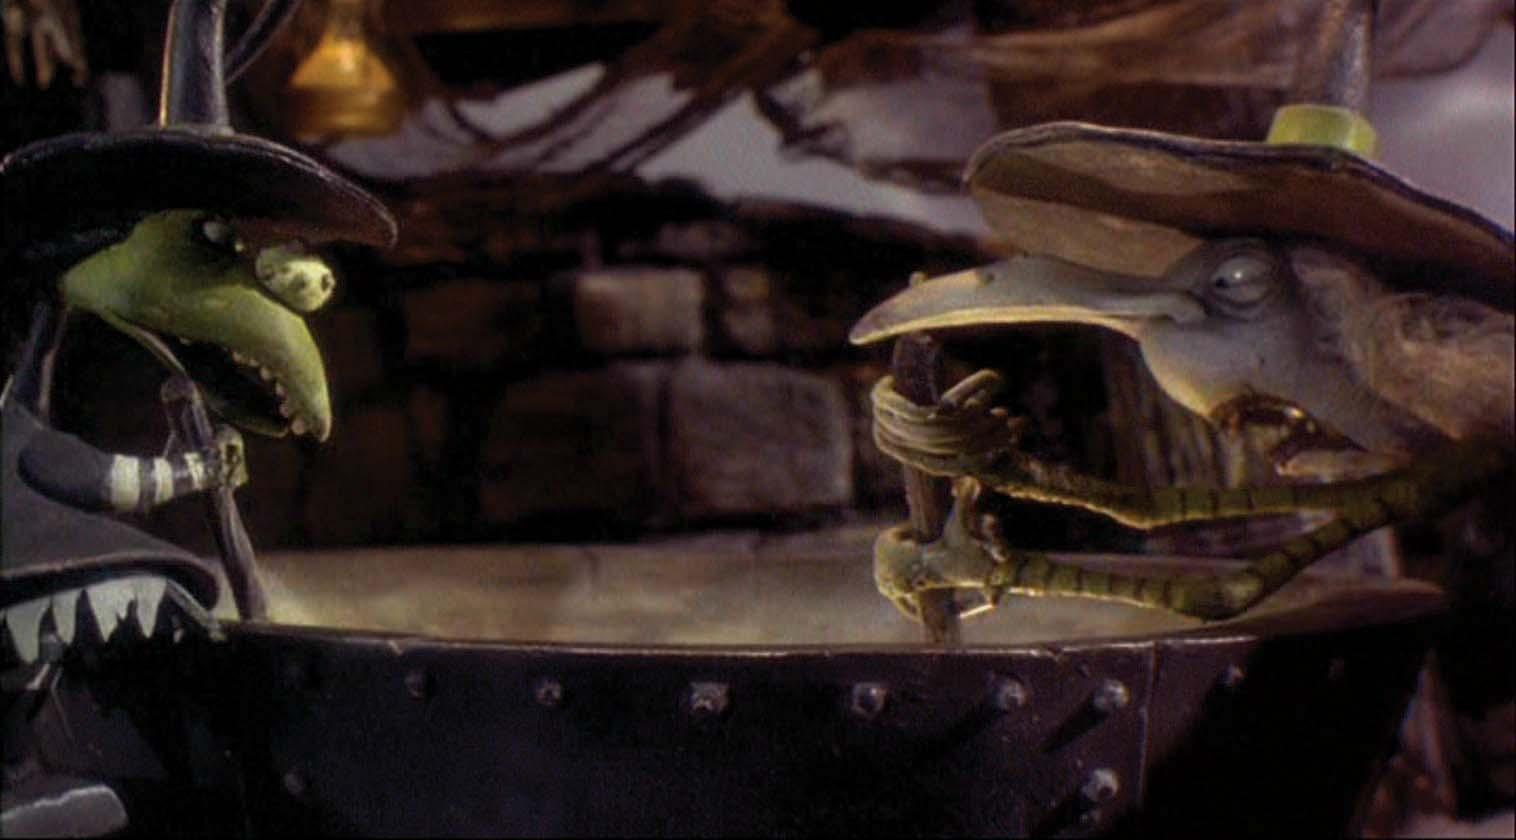 Witches\' cauldron from The Nightmare Before Christmas